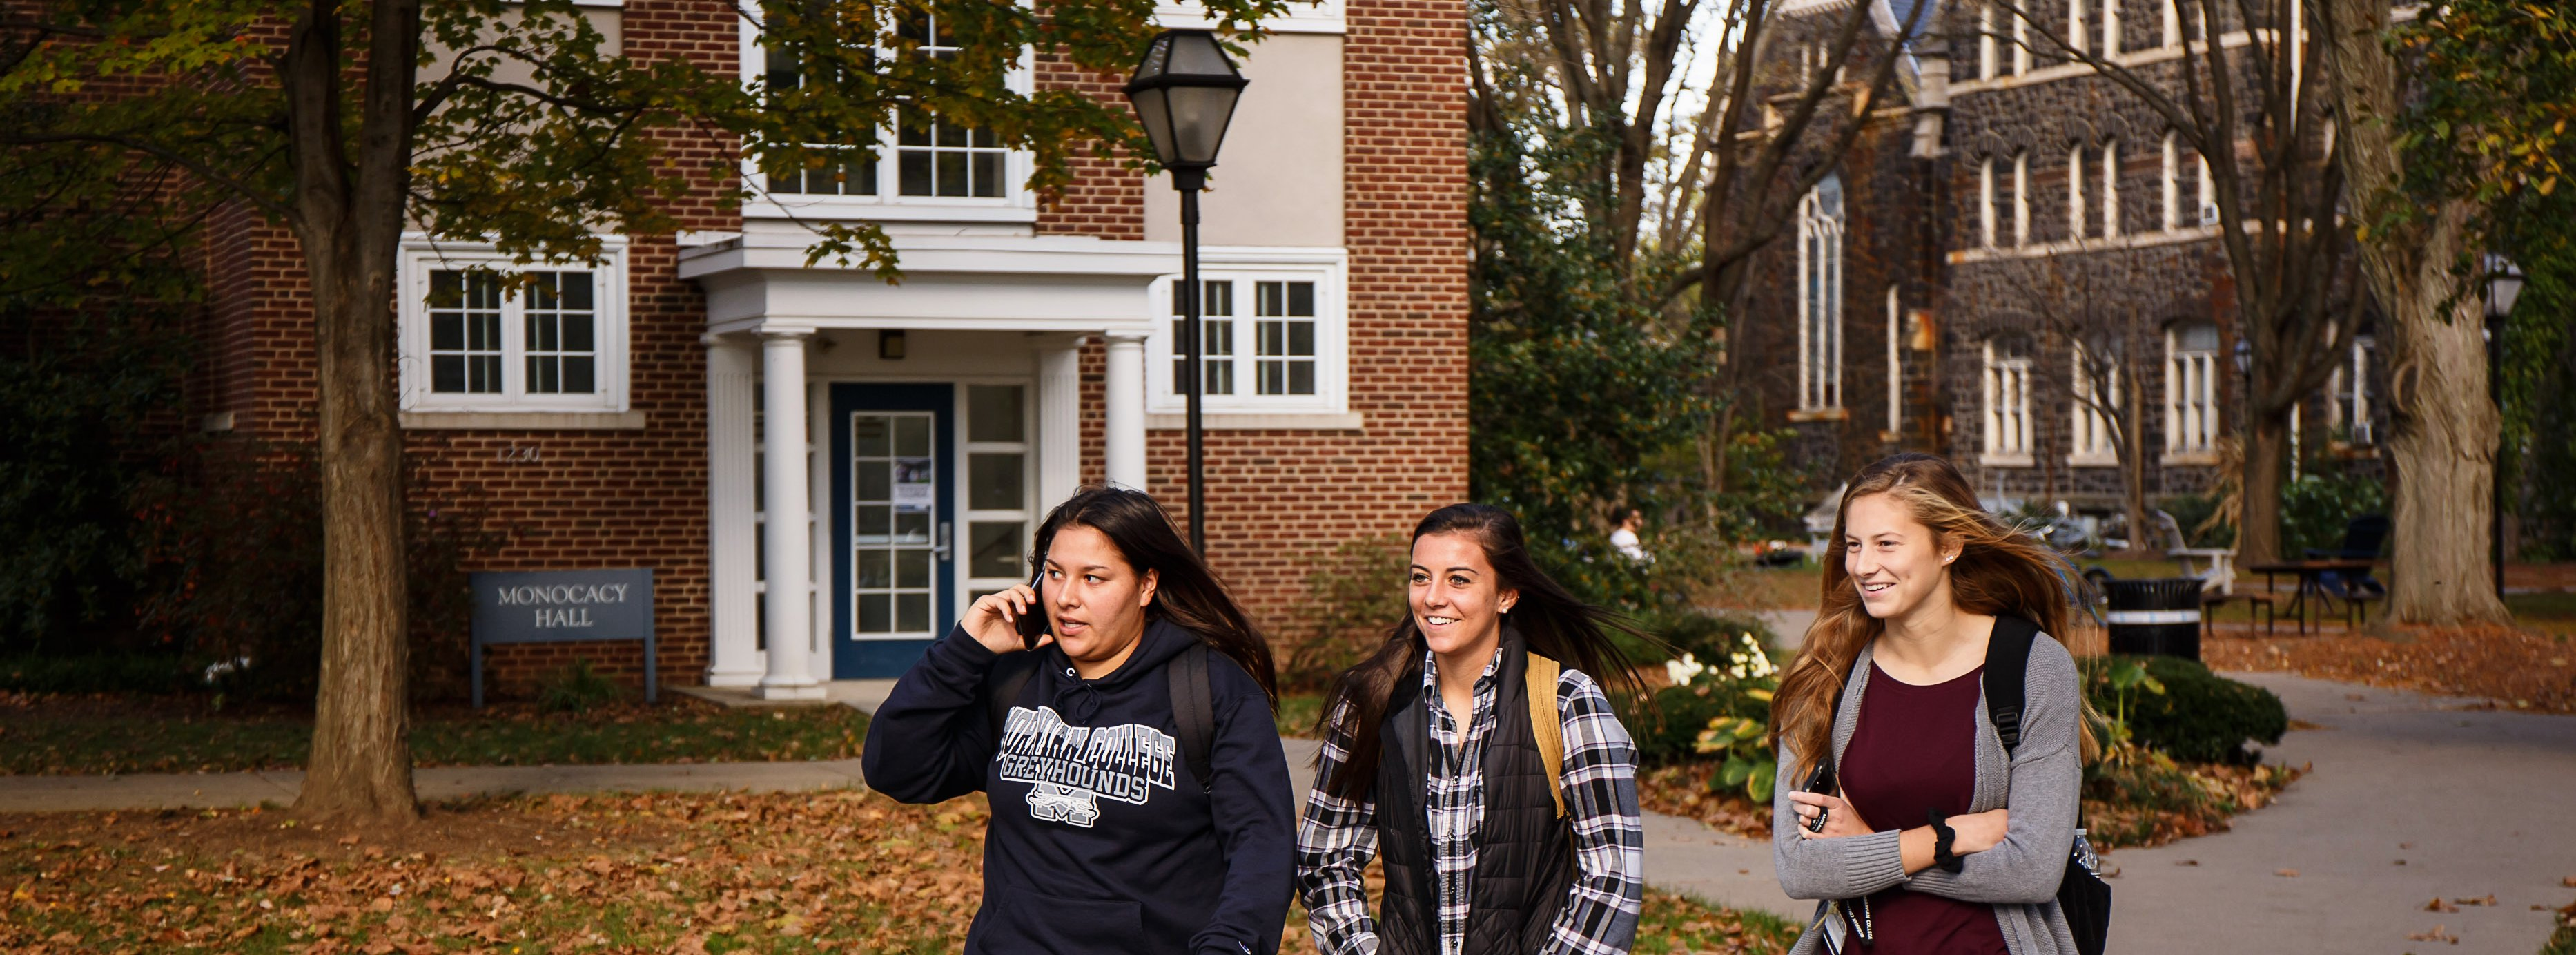 Three students walk in a group out front of Monocacy Hall.